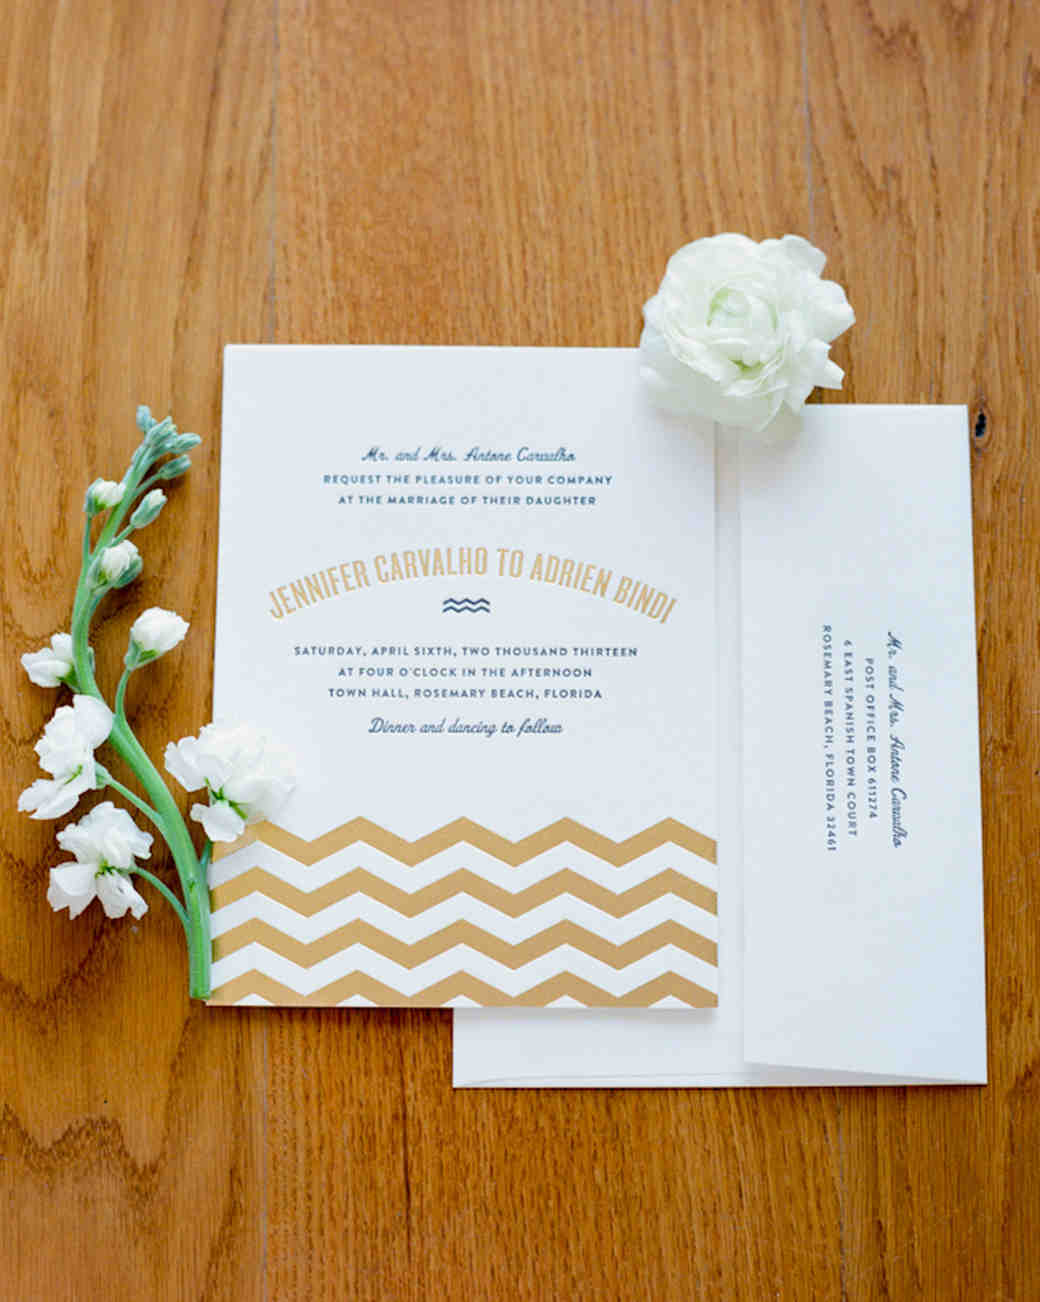 Nautical Wedding Invitations Perfect for an Oceanside Celebration – Nautical Wedding Invite